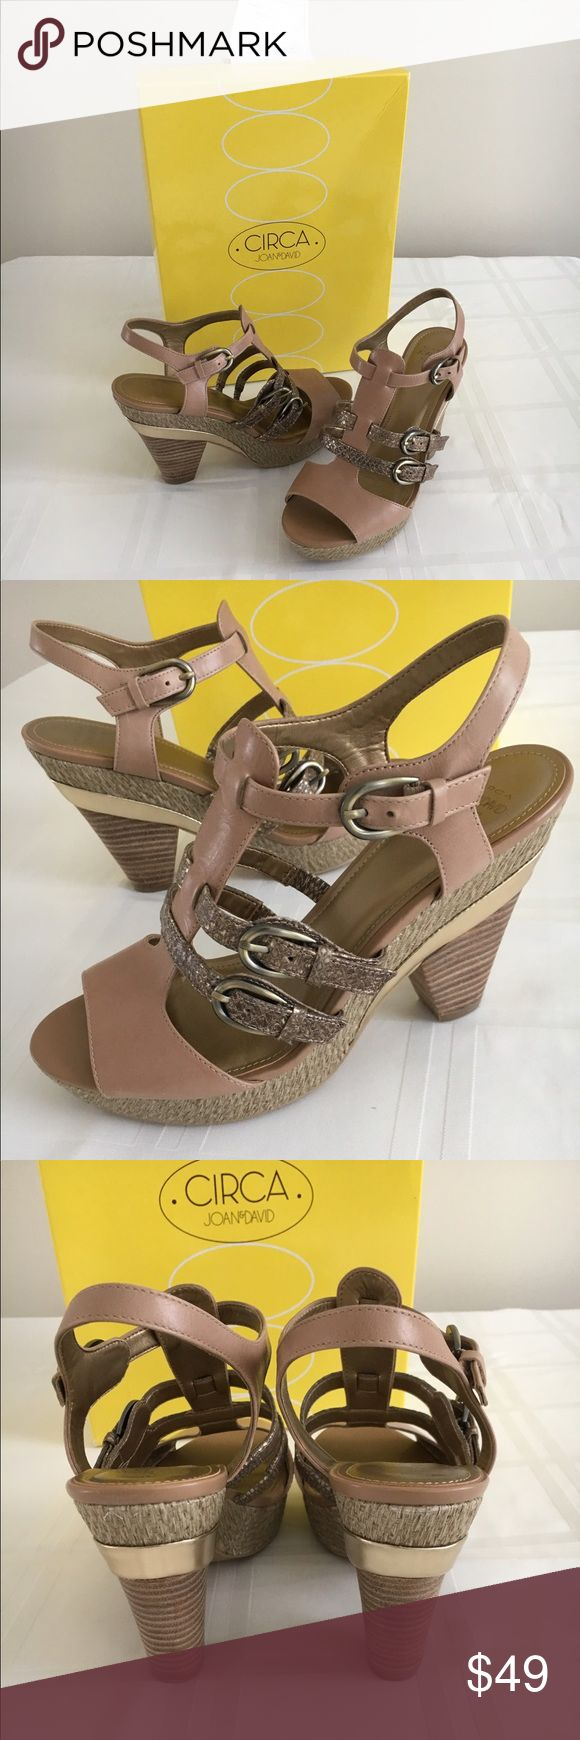 """Circa Joan & David platform sandals Beautiful blend of tan, jute and gold. 3 1/2""""-4"""" wooden stacked heel. 1"""" platform. Fully adjustable. Size 8 M. Fits true to size. Worn one time. A little too high for me. Paid $75 at Macys. circa joan & david Shoes Sandals"""